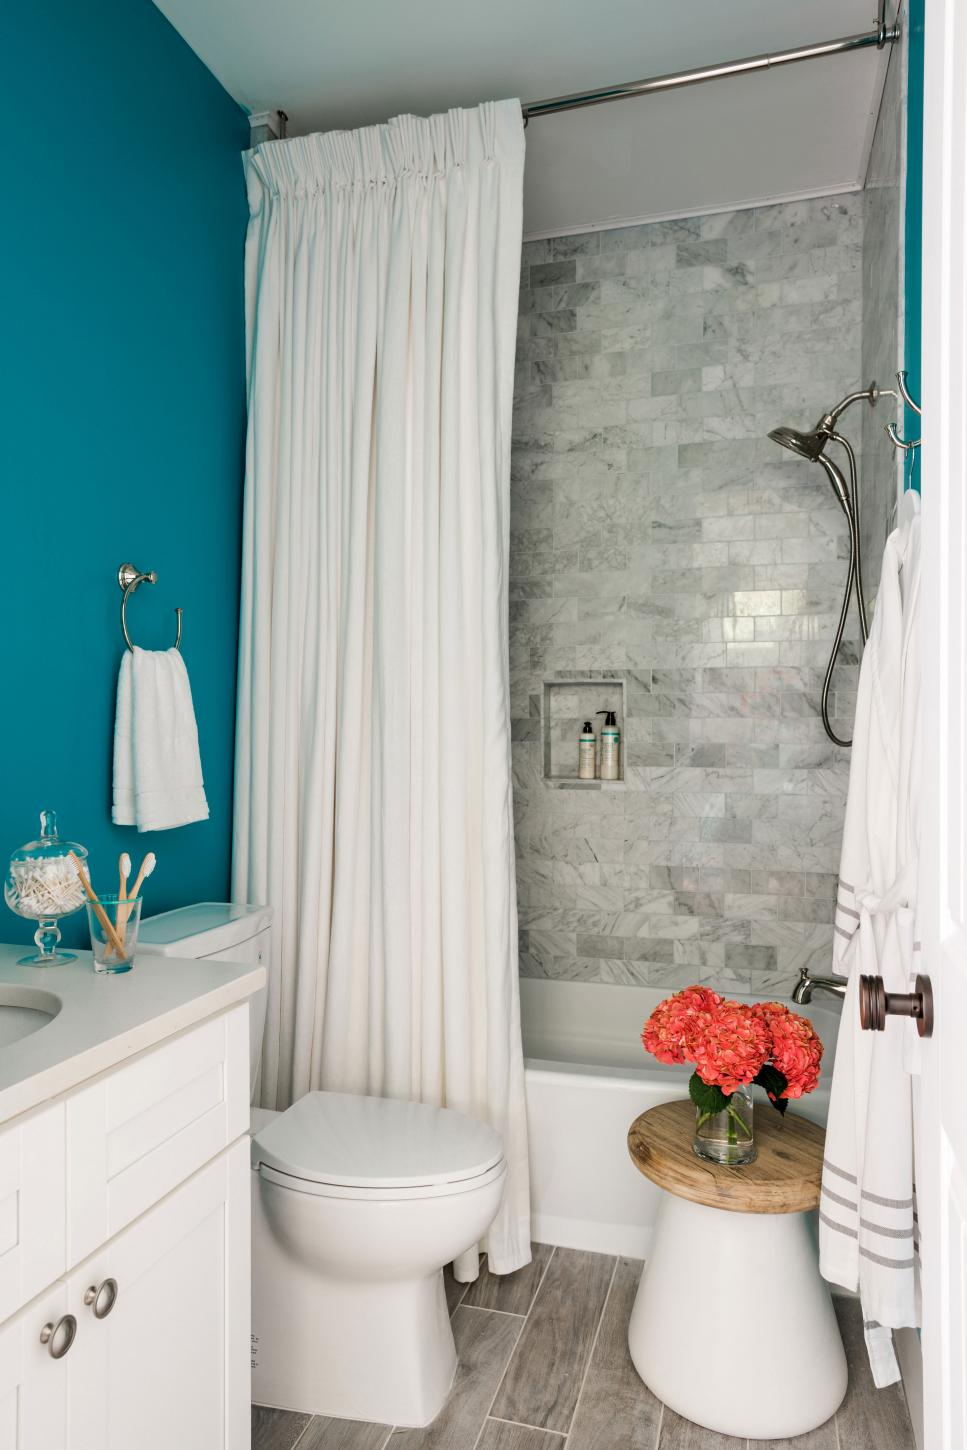 Lovely Color Ideas For Bathroom - The Boring White Tiles Of Yesterday Have in Bathroom Ideas Colors